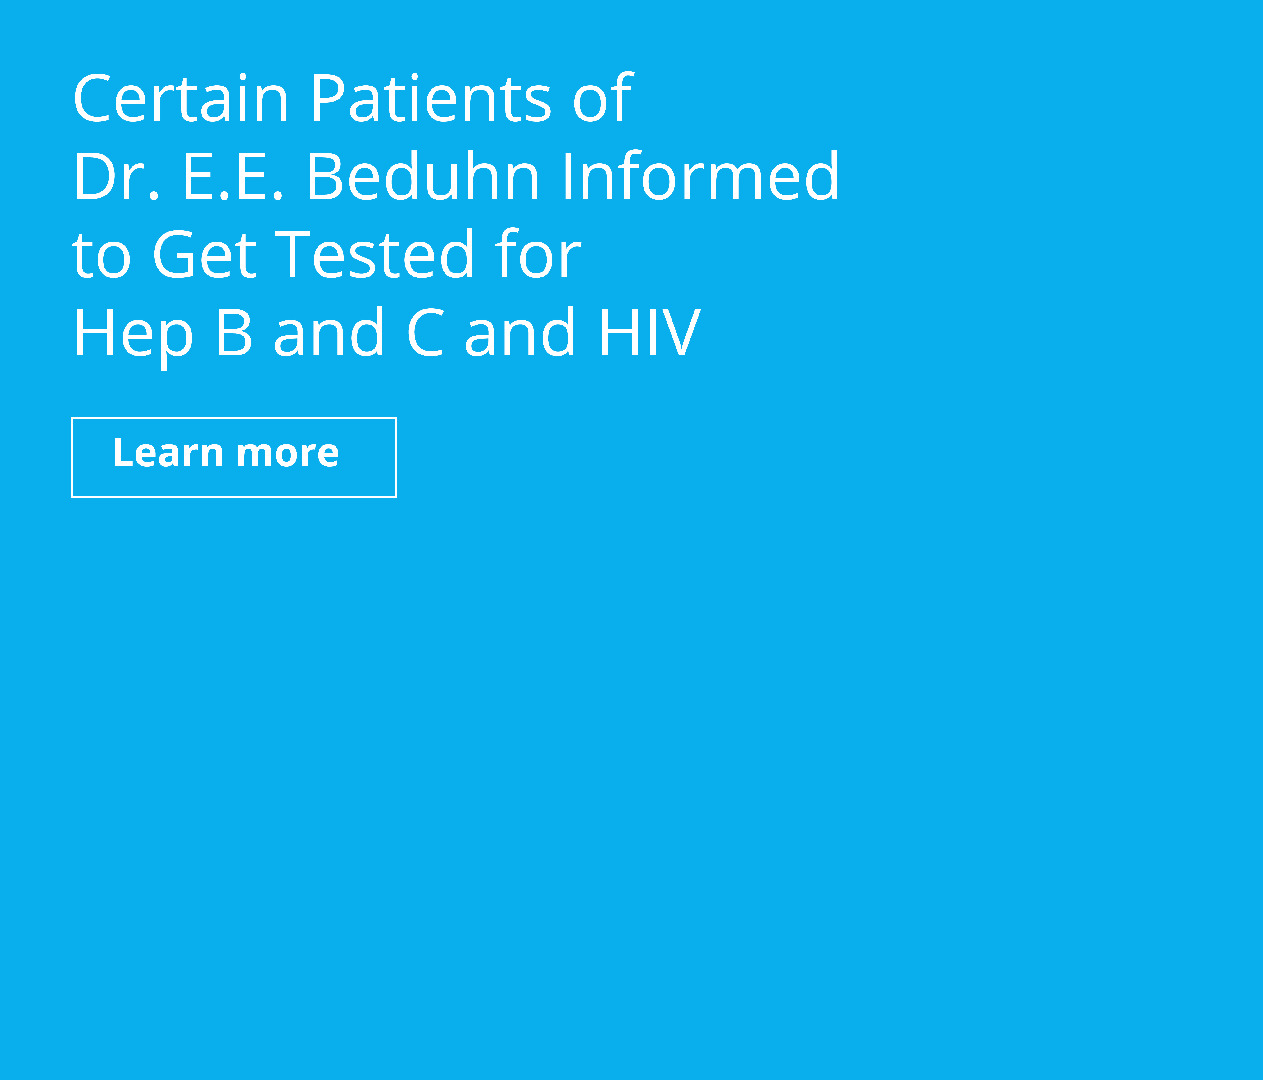 Get Tested for Hep B and C and HIV